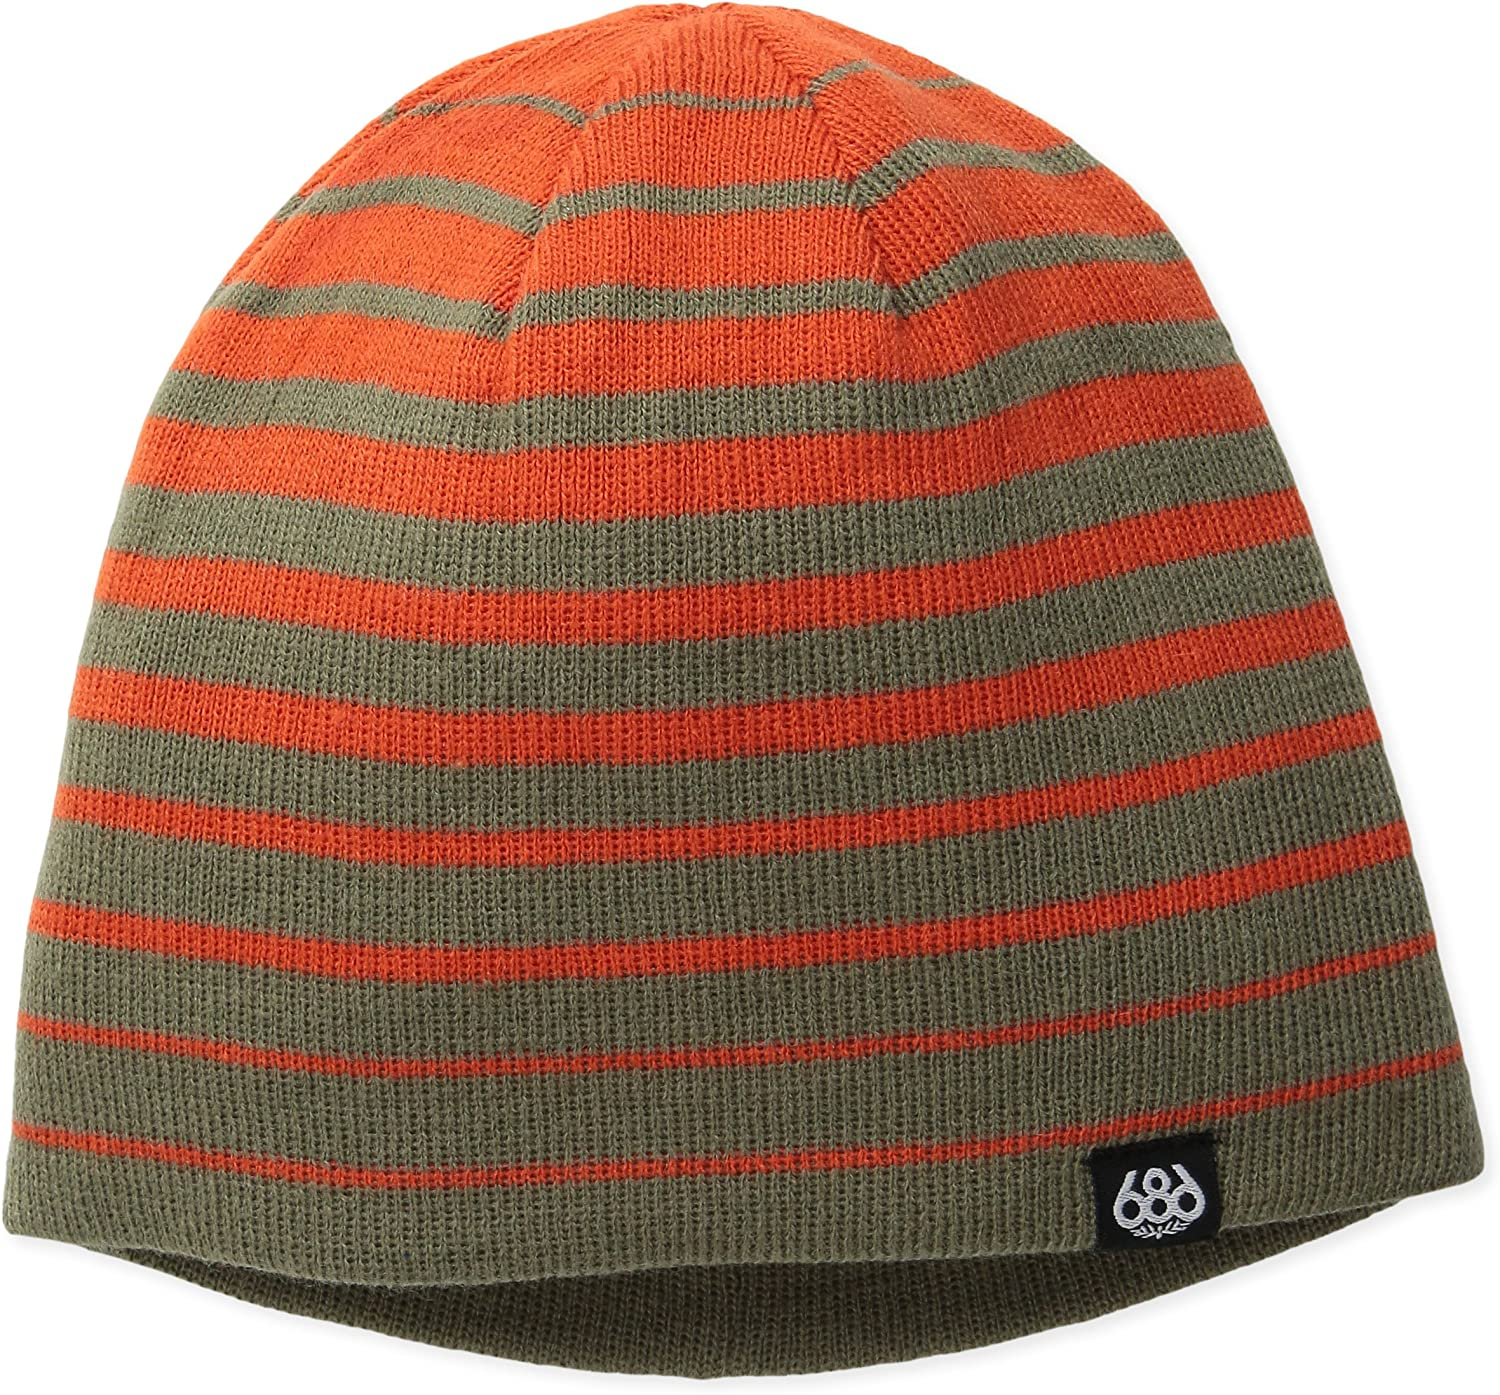 686 Boy's Max 86% OFF Clearance SALE Limited time Elevated Reversible Beanie